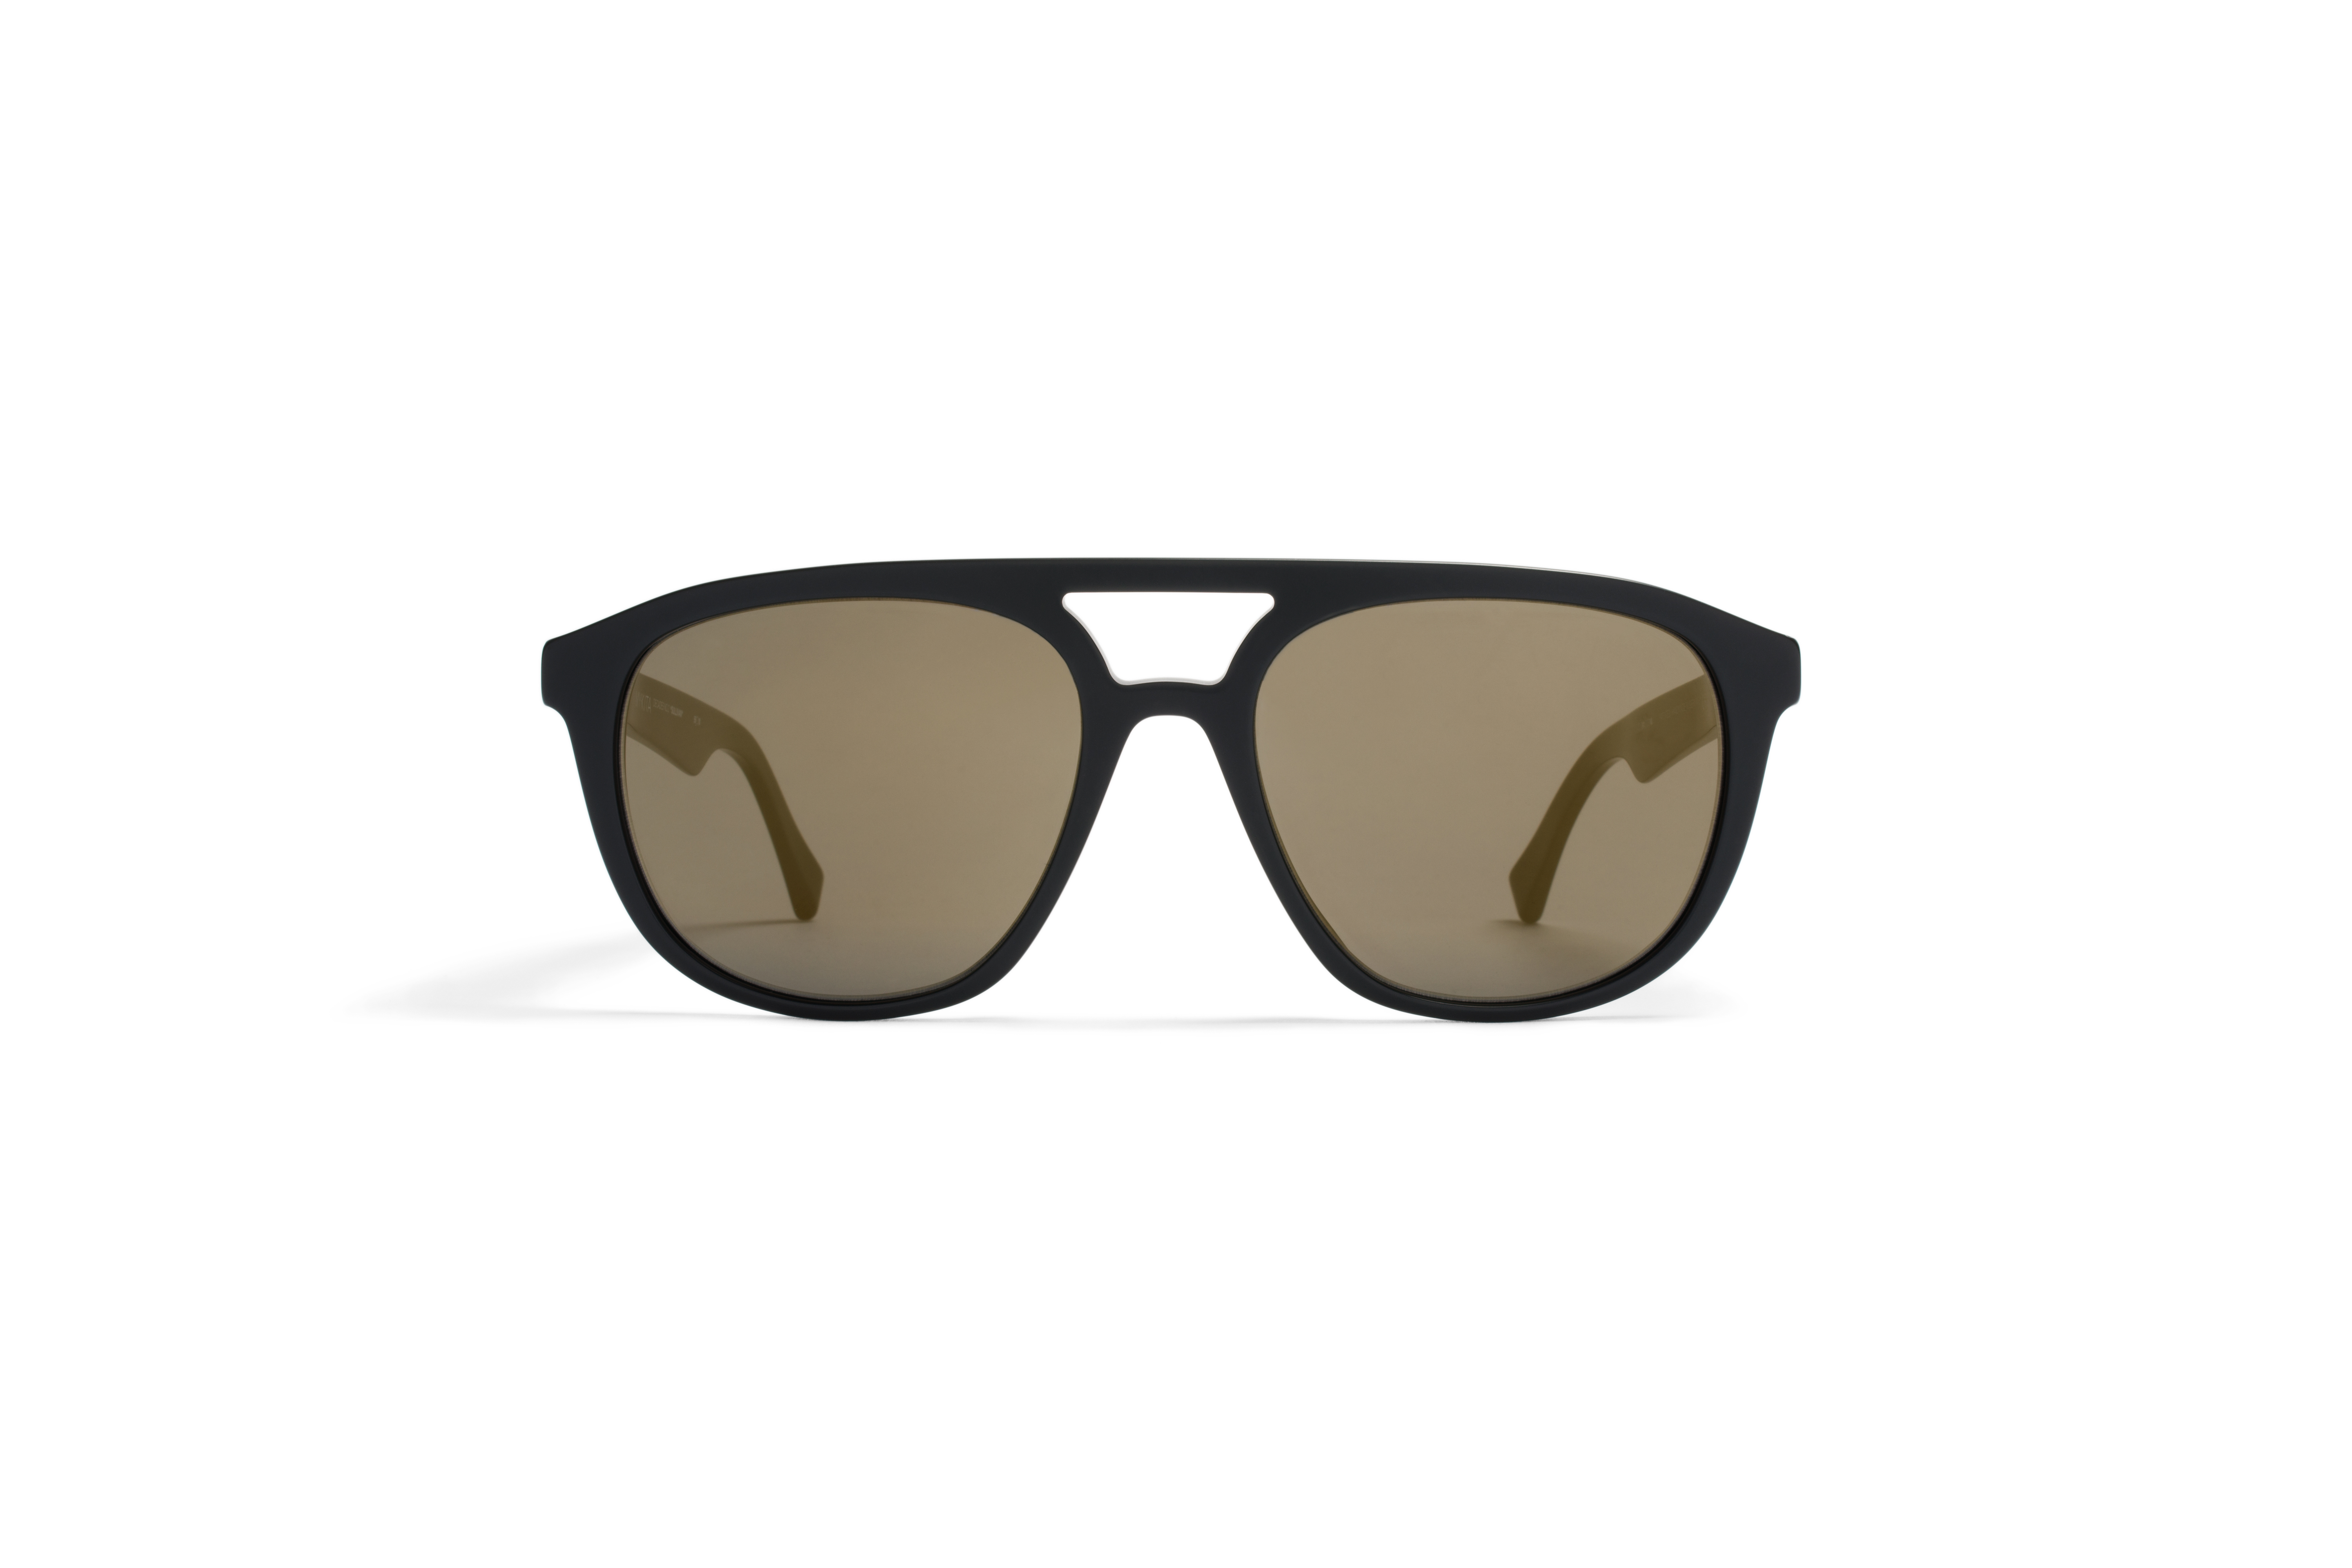 MYKITA - Unfortunately this product is no longer available